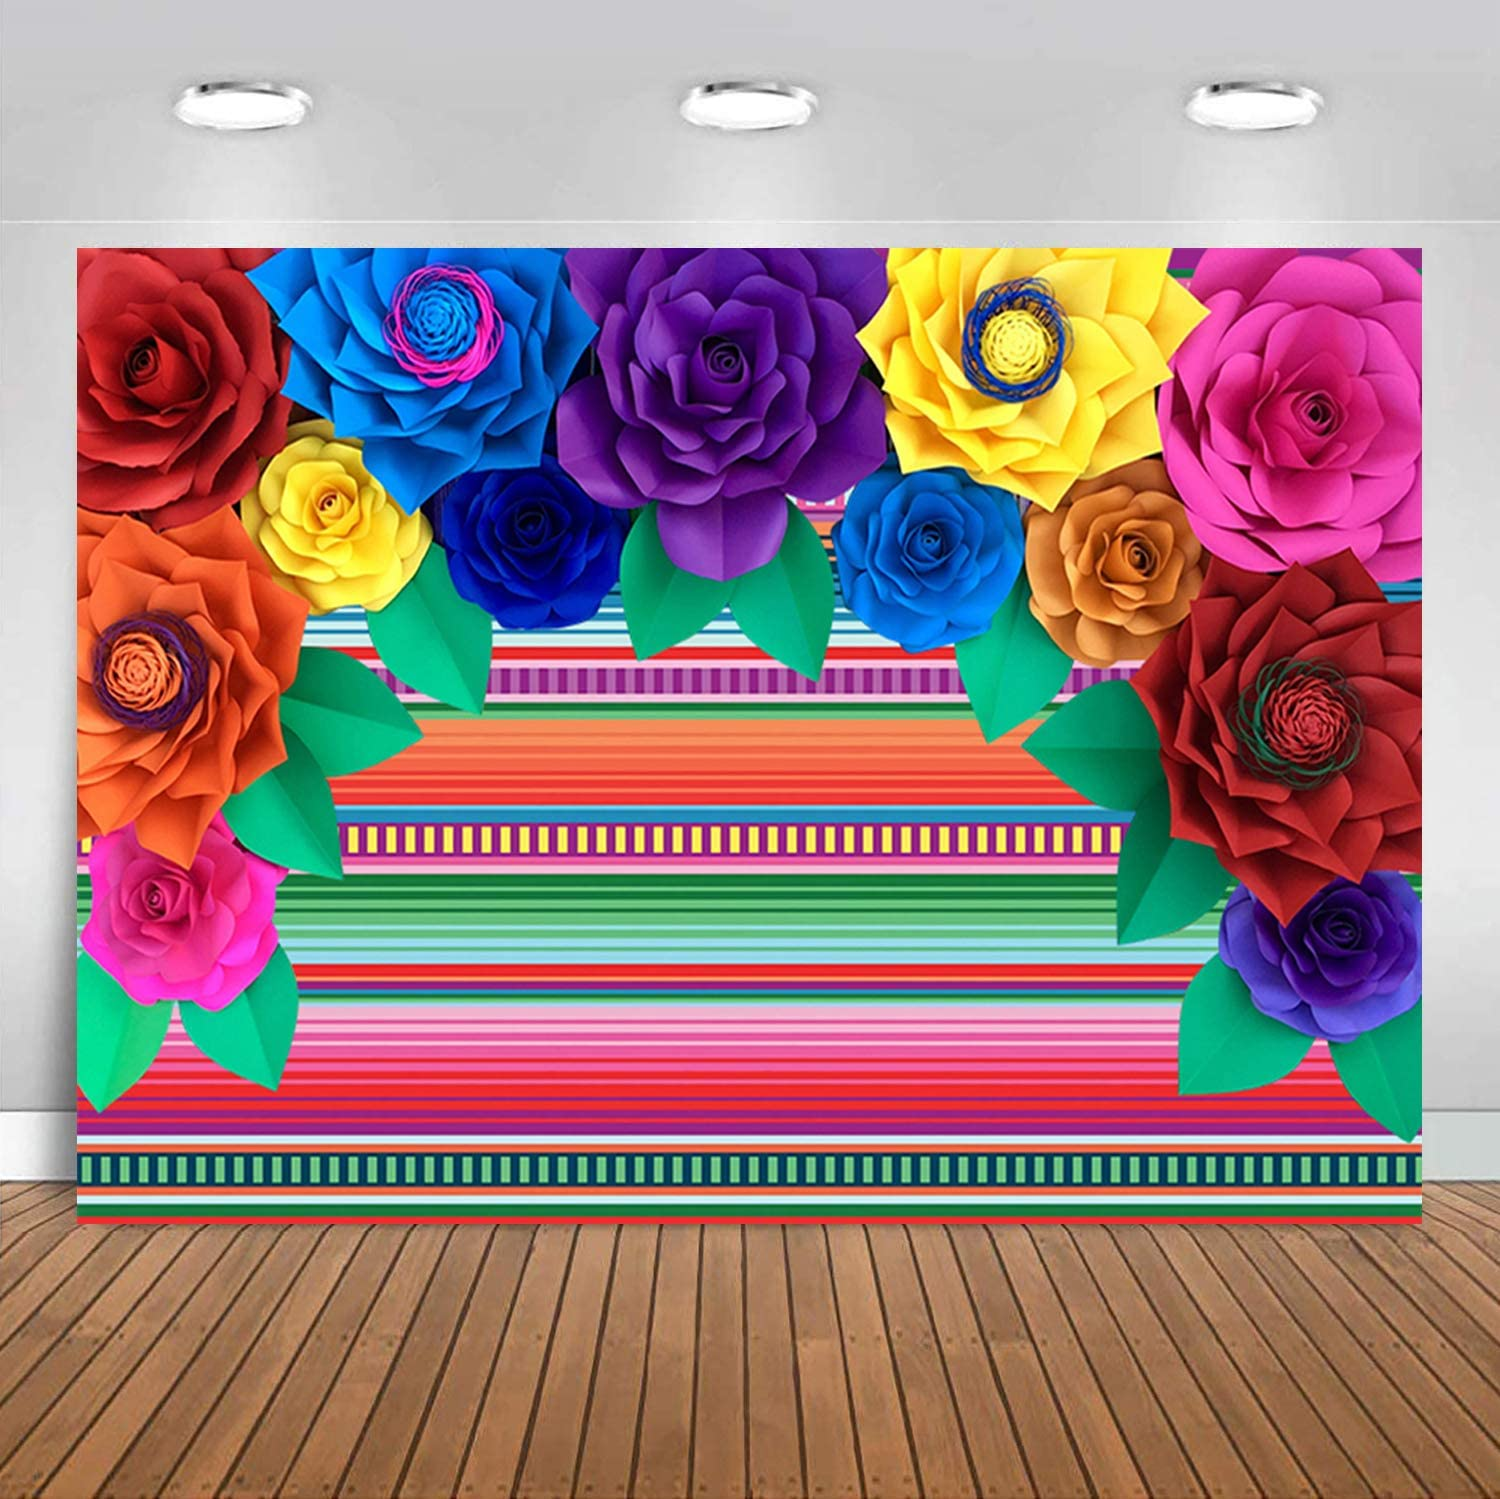 Sensfun Fabric Mexican Fiesta Theme Party Stripe Backdrop Colorful Striped Paper Flower Photography Background for Cinco De Mayo Festival Carnival Event Table Decor Banner PhotoBooth Shoot Props 7x5ft